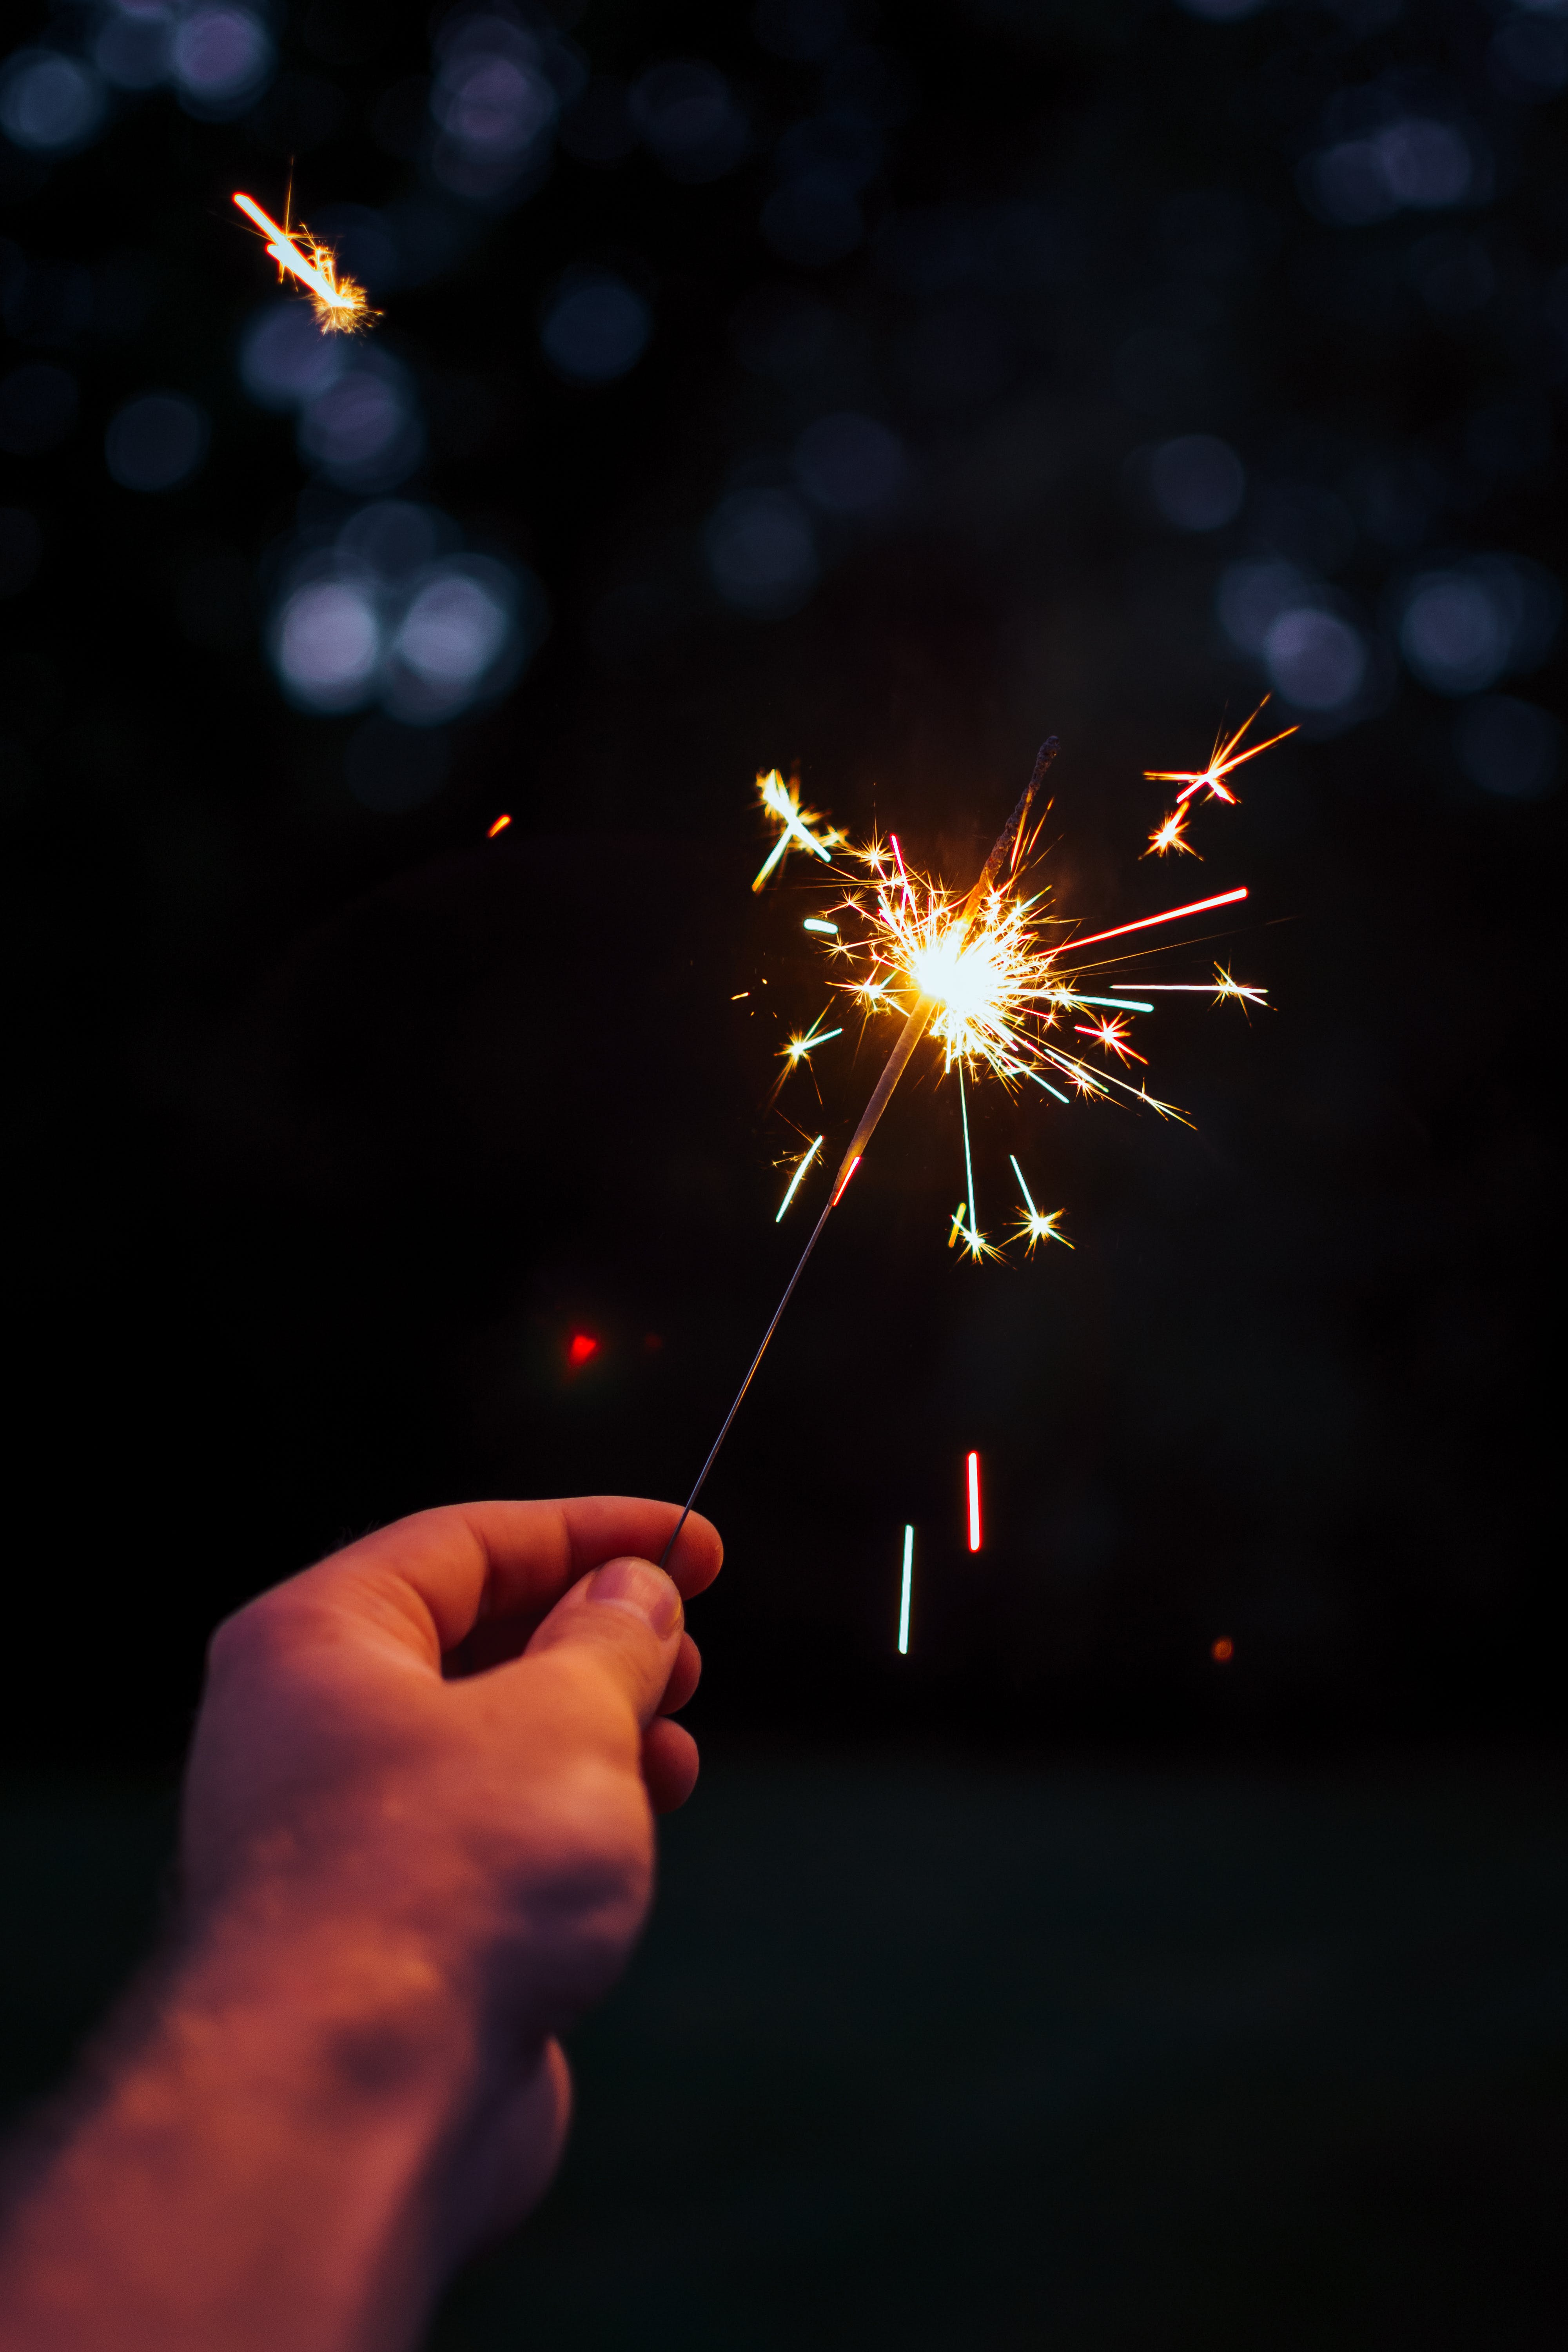 Selective Focus Photography Person Holding Lighted Sparkler at Nighttime